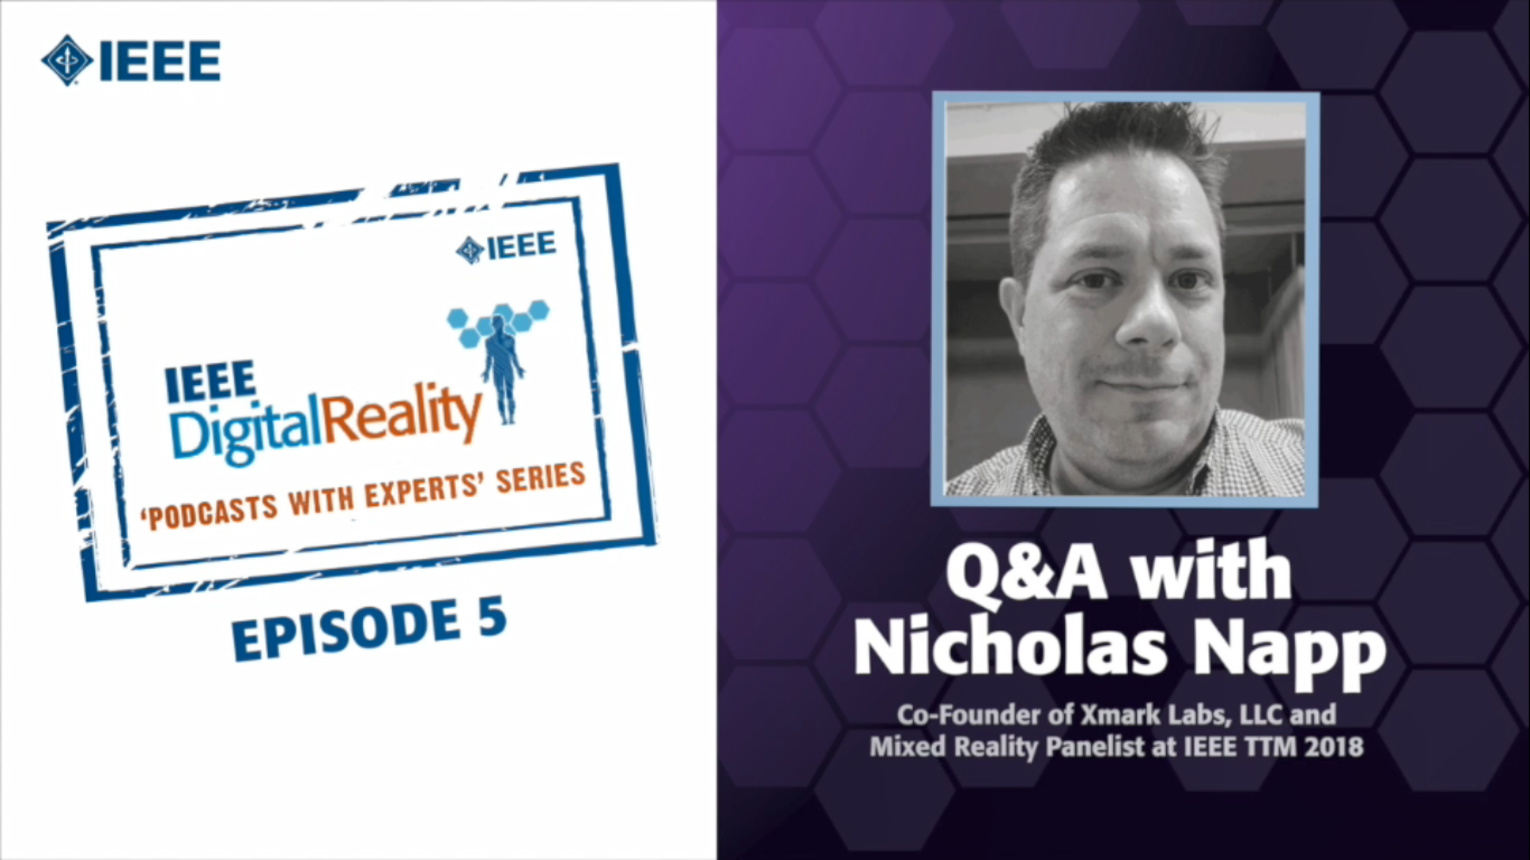 Q&A with Nicholas Napp: IEEE Digital Reality Podcast, Episode 5